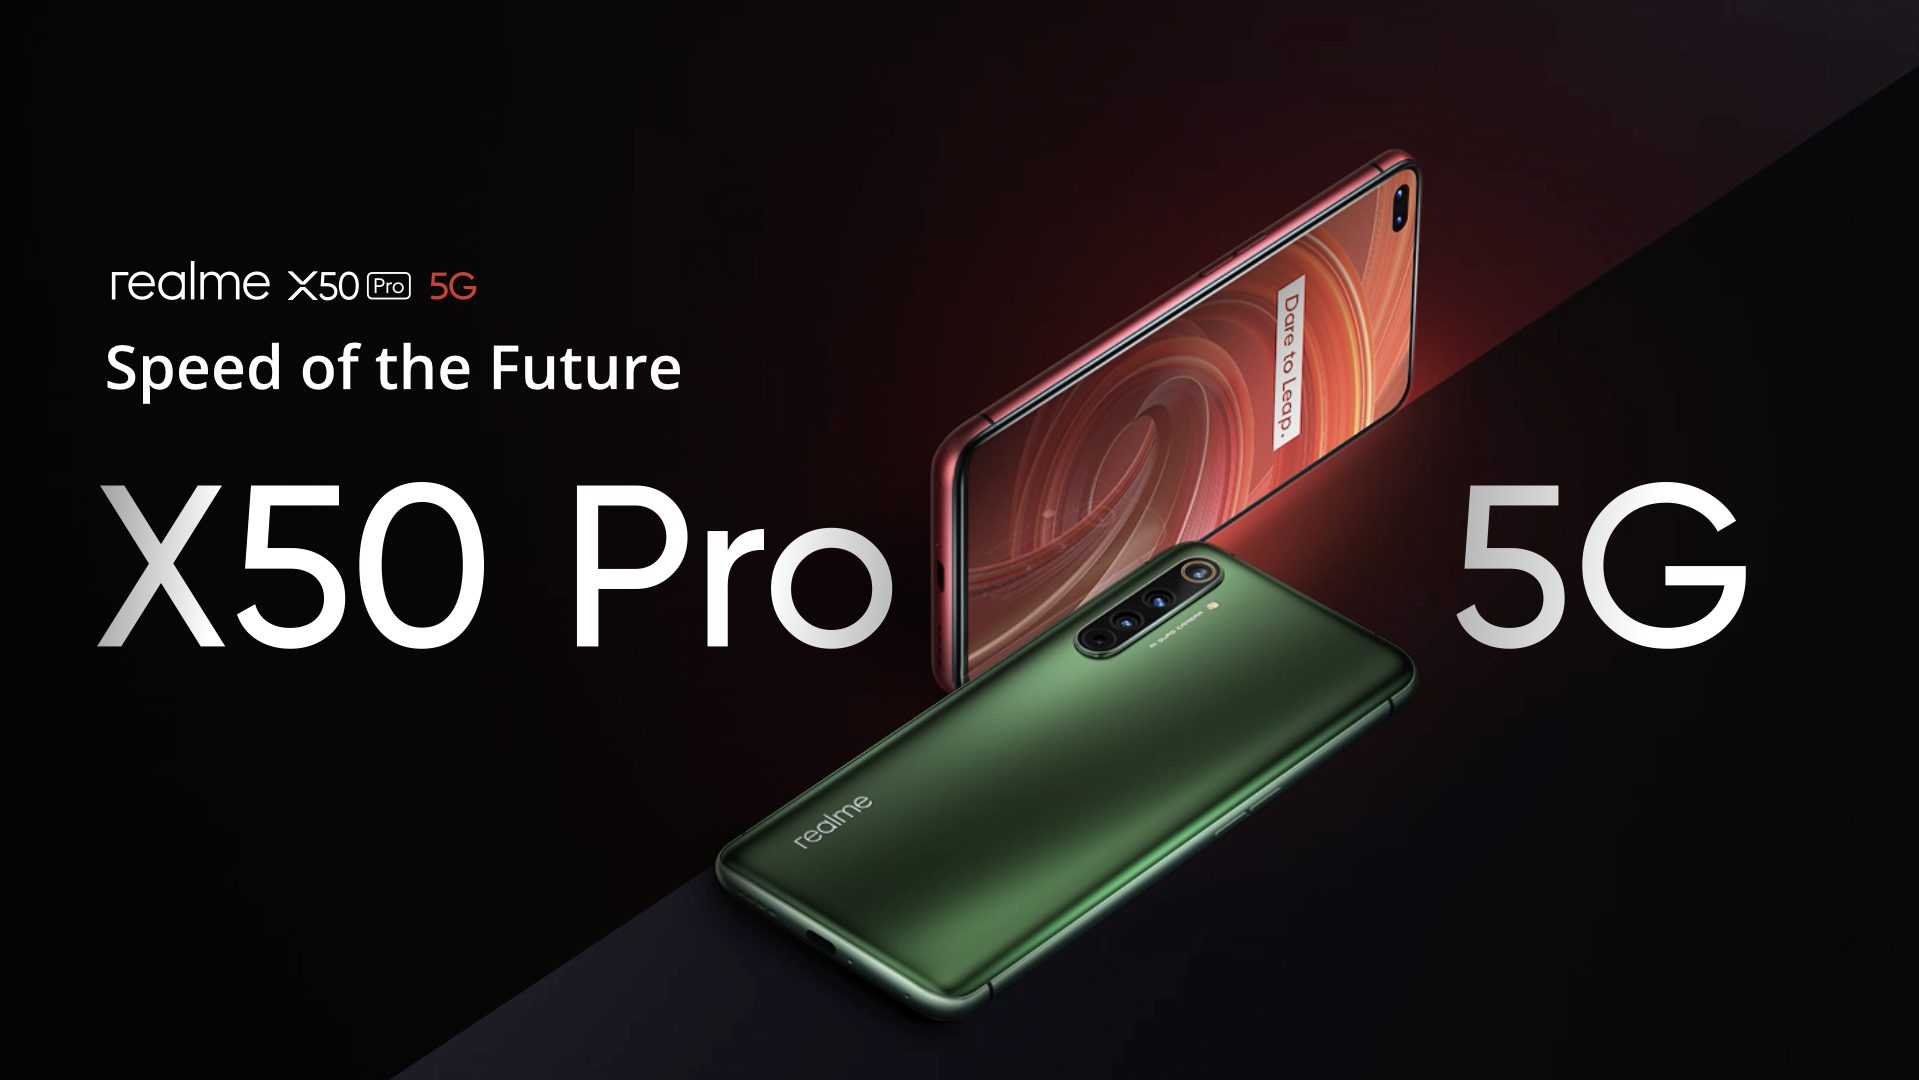 realme-x50-pro-price-specs-release-date-availability-philippines-official